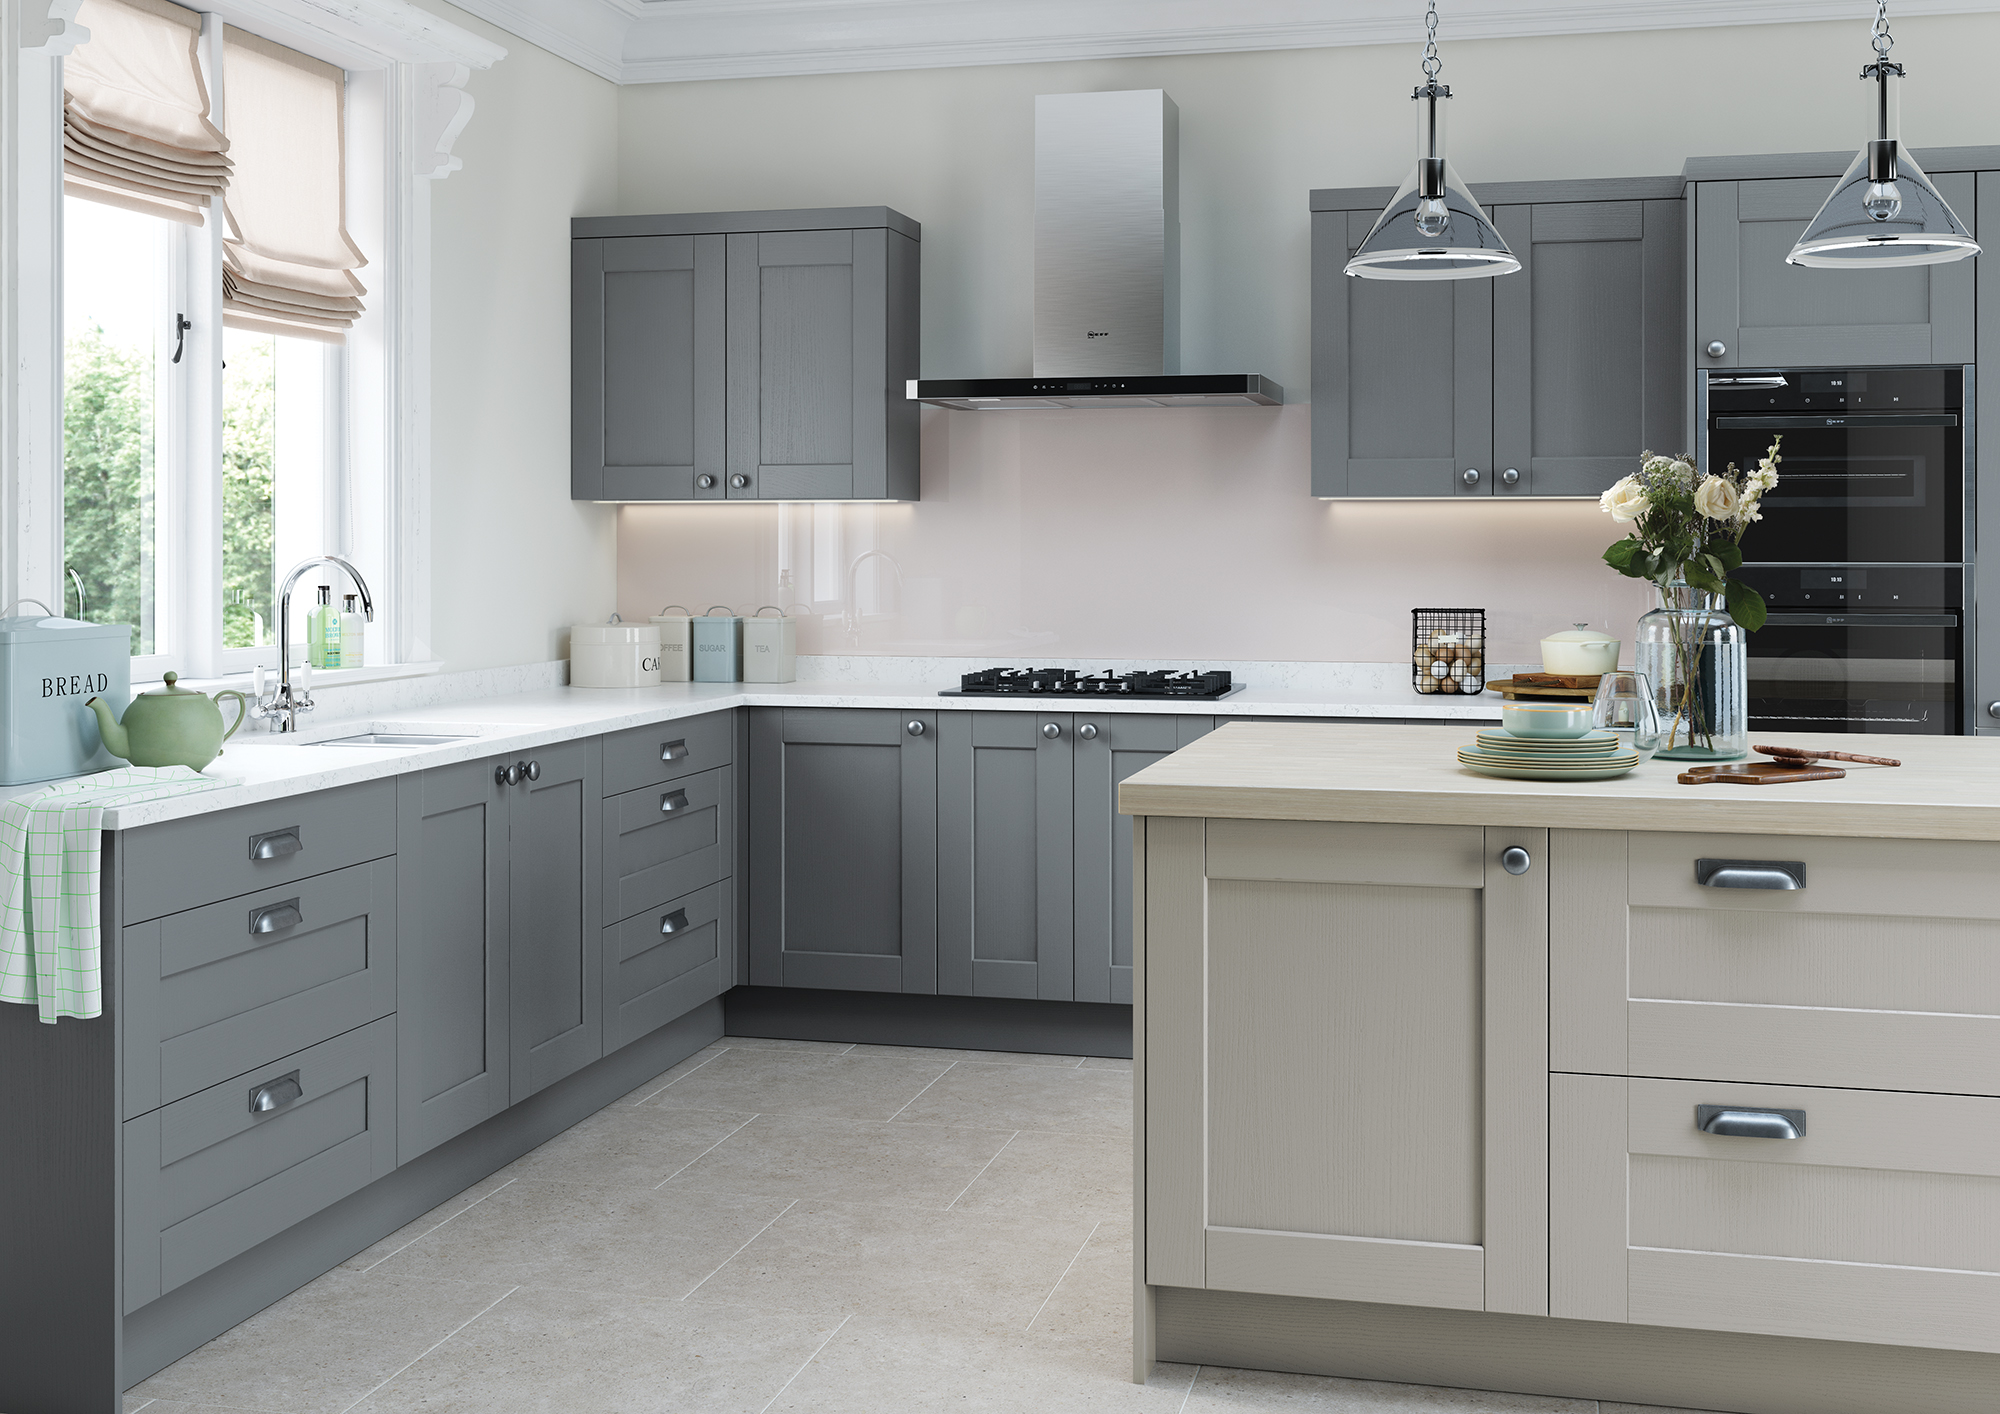 The Kemble Light Grey and Dust Grey Main Shoot - Riley James Kitchens Stroud